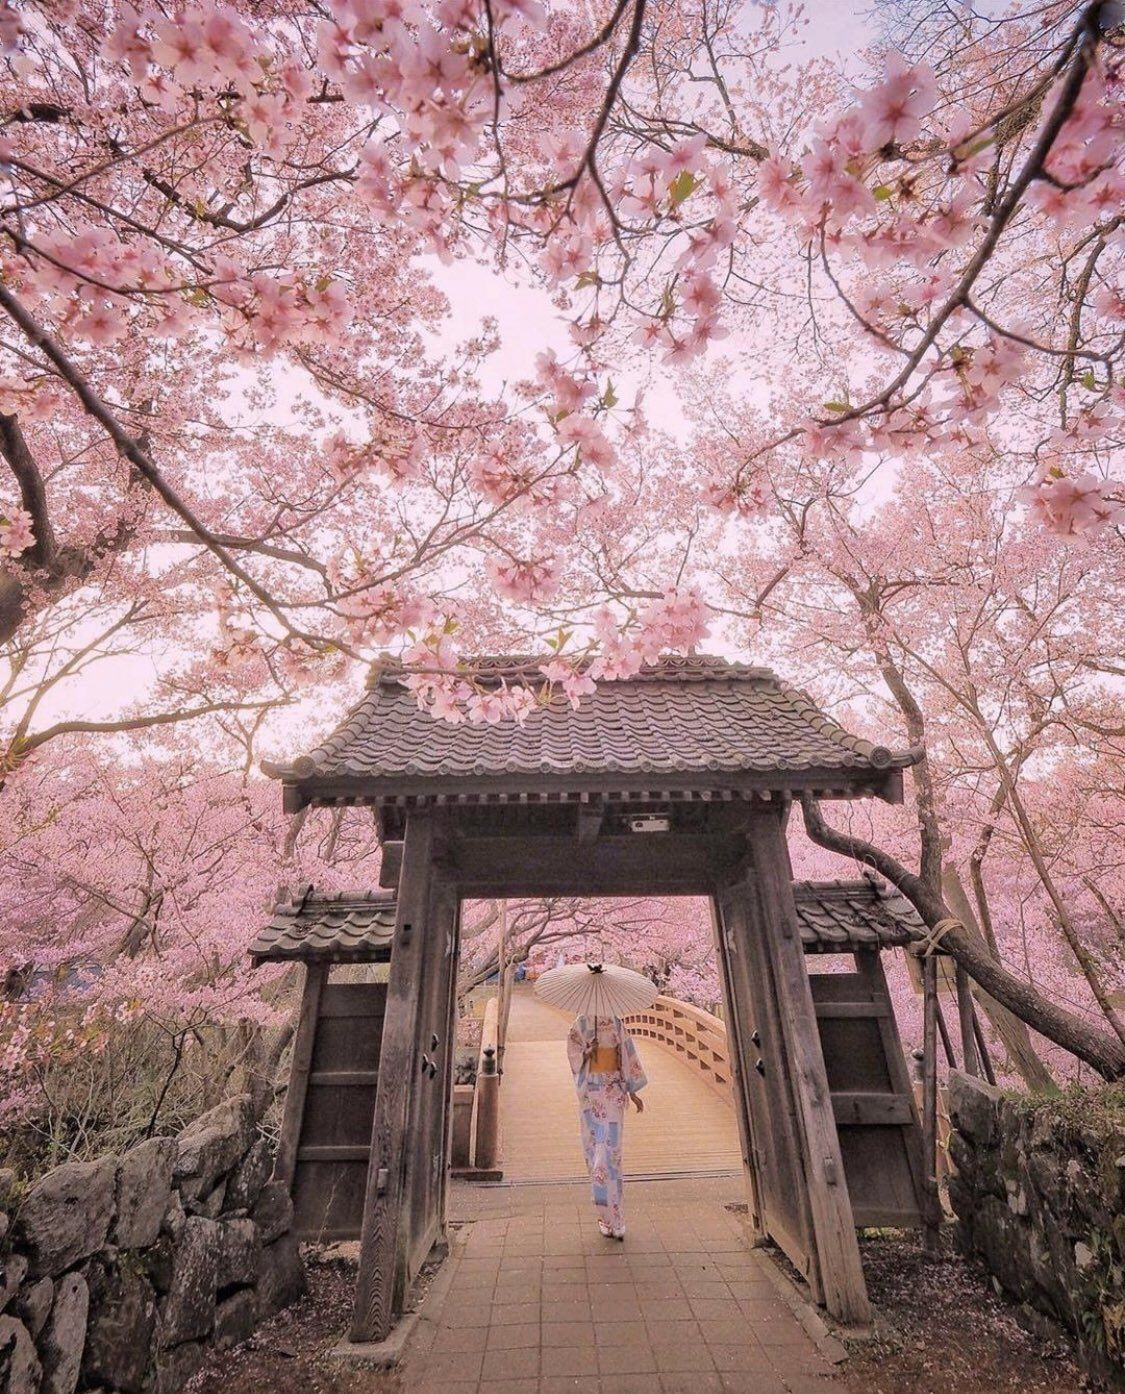 11 11 On Twitter Cherry Blossom Japan Cherry Blossom Wallpaper Nature Photography